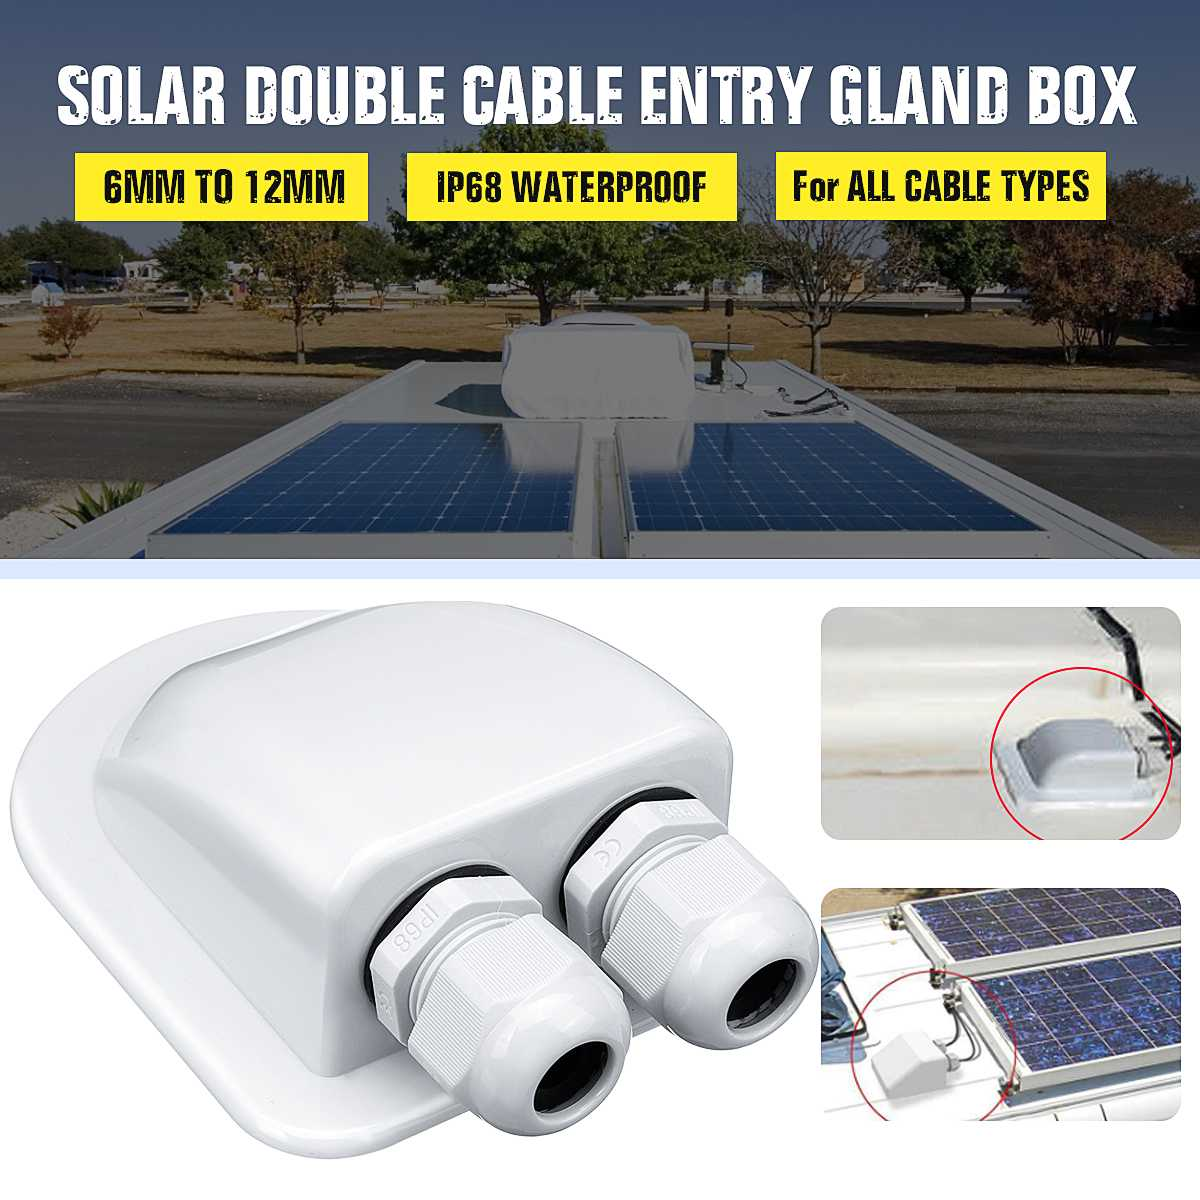 6 to 12mm Waterproof ABS Solar Double Twin Two Holes Cable Entry Gland <font><b>Box</b></font> Curved Cable Connector Holder For <font><b>Rv</b></font> Campervan Boat image